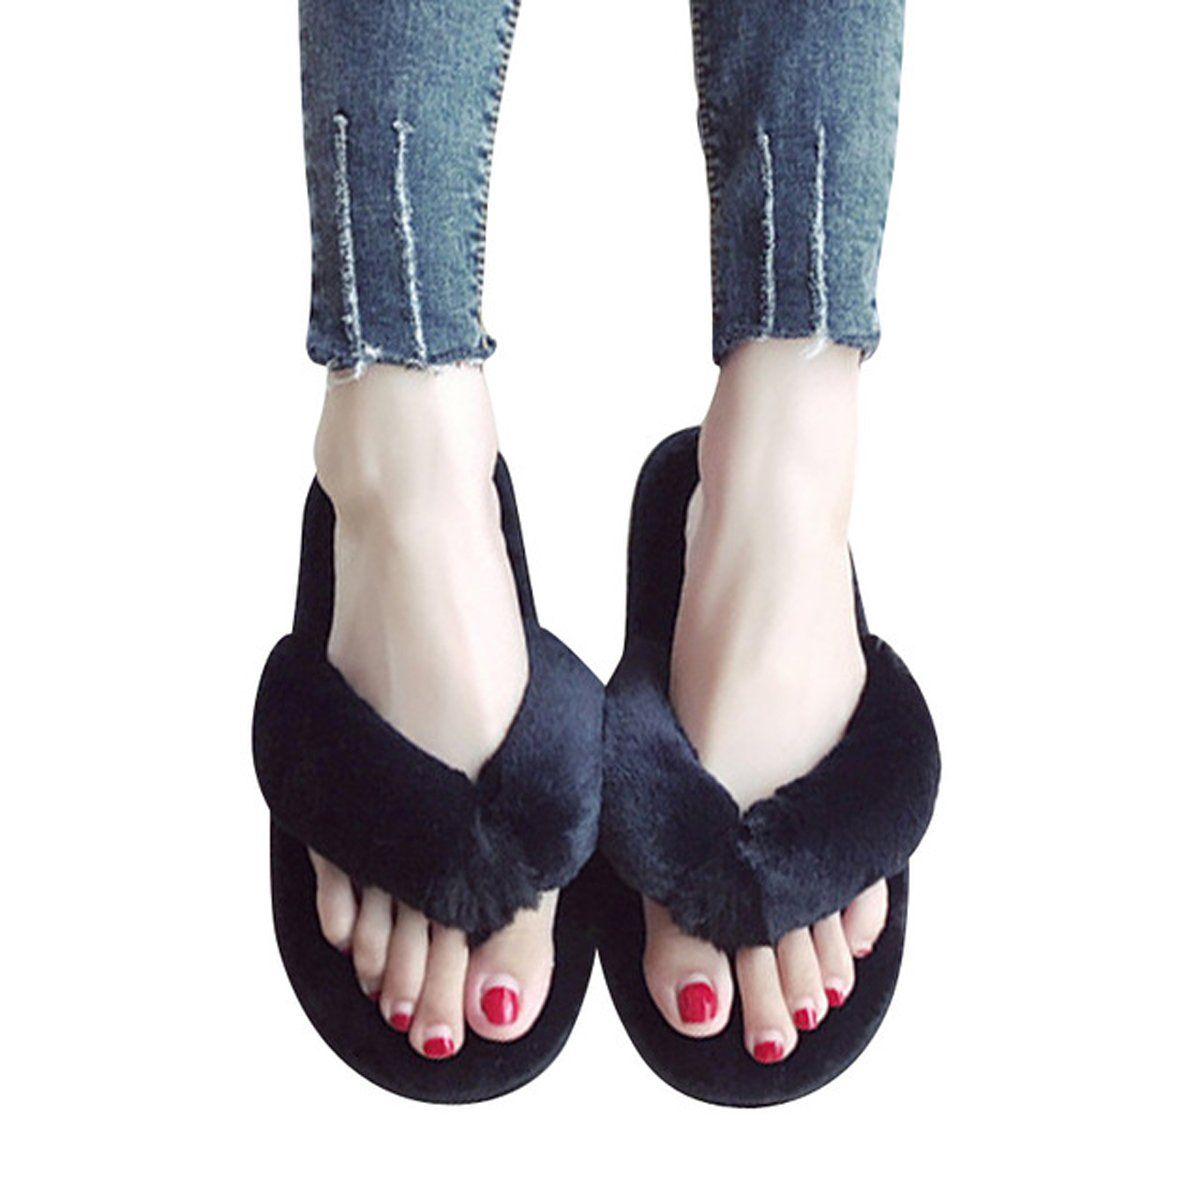 797809a551747 Amazon.com | Stunner Women's Faux Fur Thong Slippers Leisure Soft ...